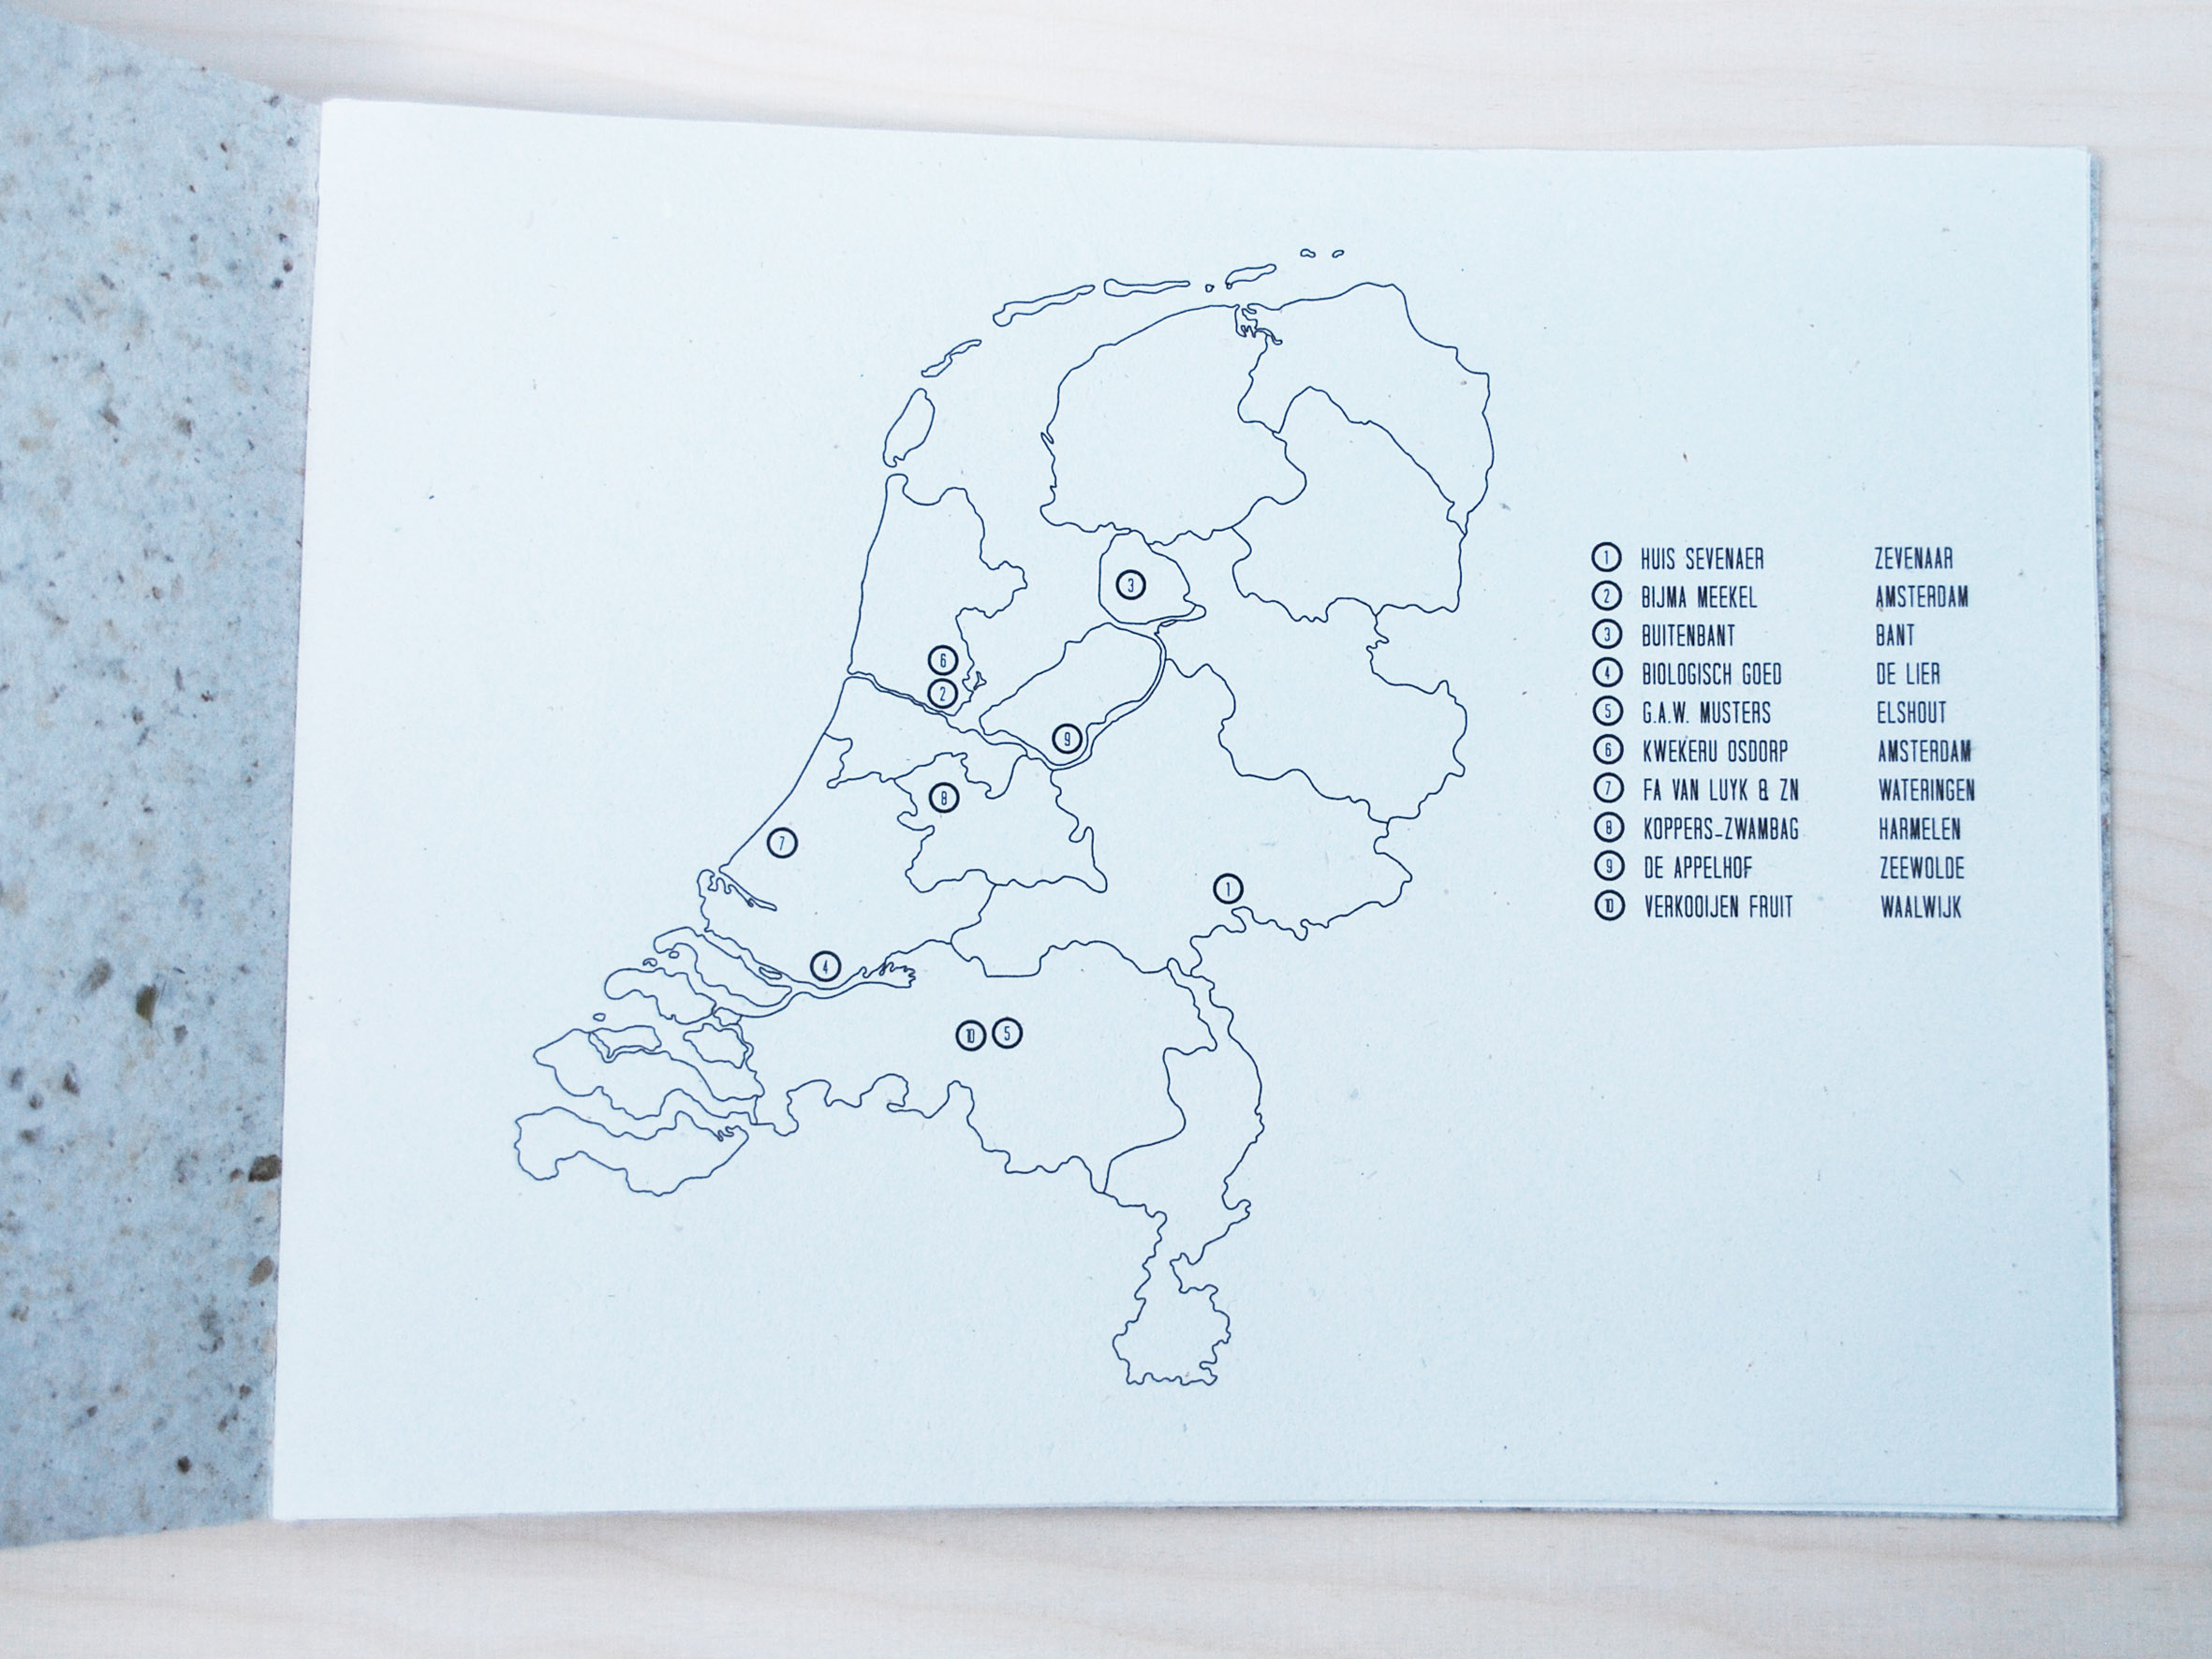 AGF Class 3 'Map of the Netherlands'